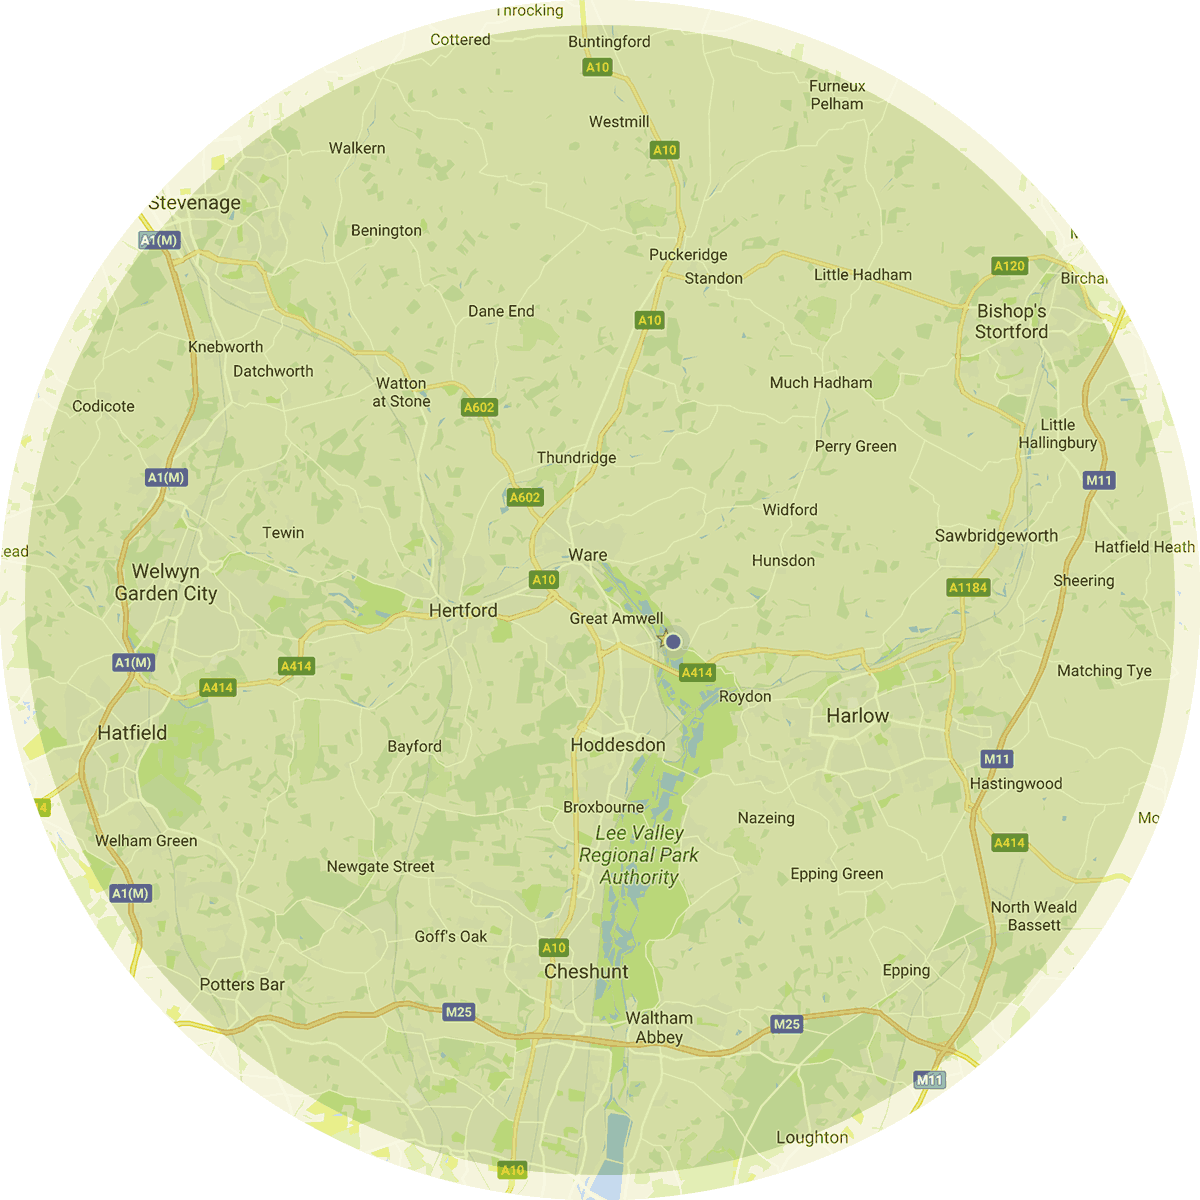 Areas covered - ware, Hertford, bishops Stortford, welling garden, epping, Harlow, stevenage, Hatfield, Sawbridgeworth, Hoddesdon, broxbourne, Nazing, Waltham Abbey, Cheshunt